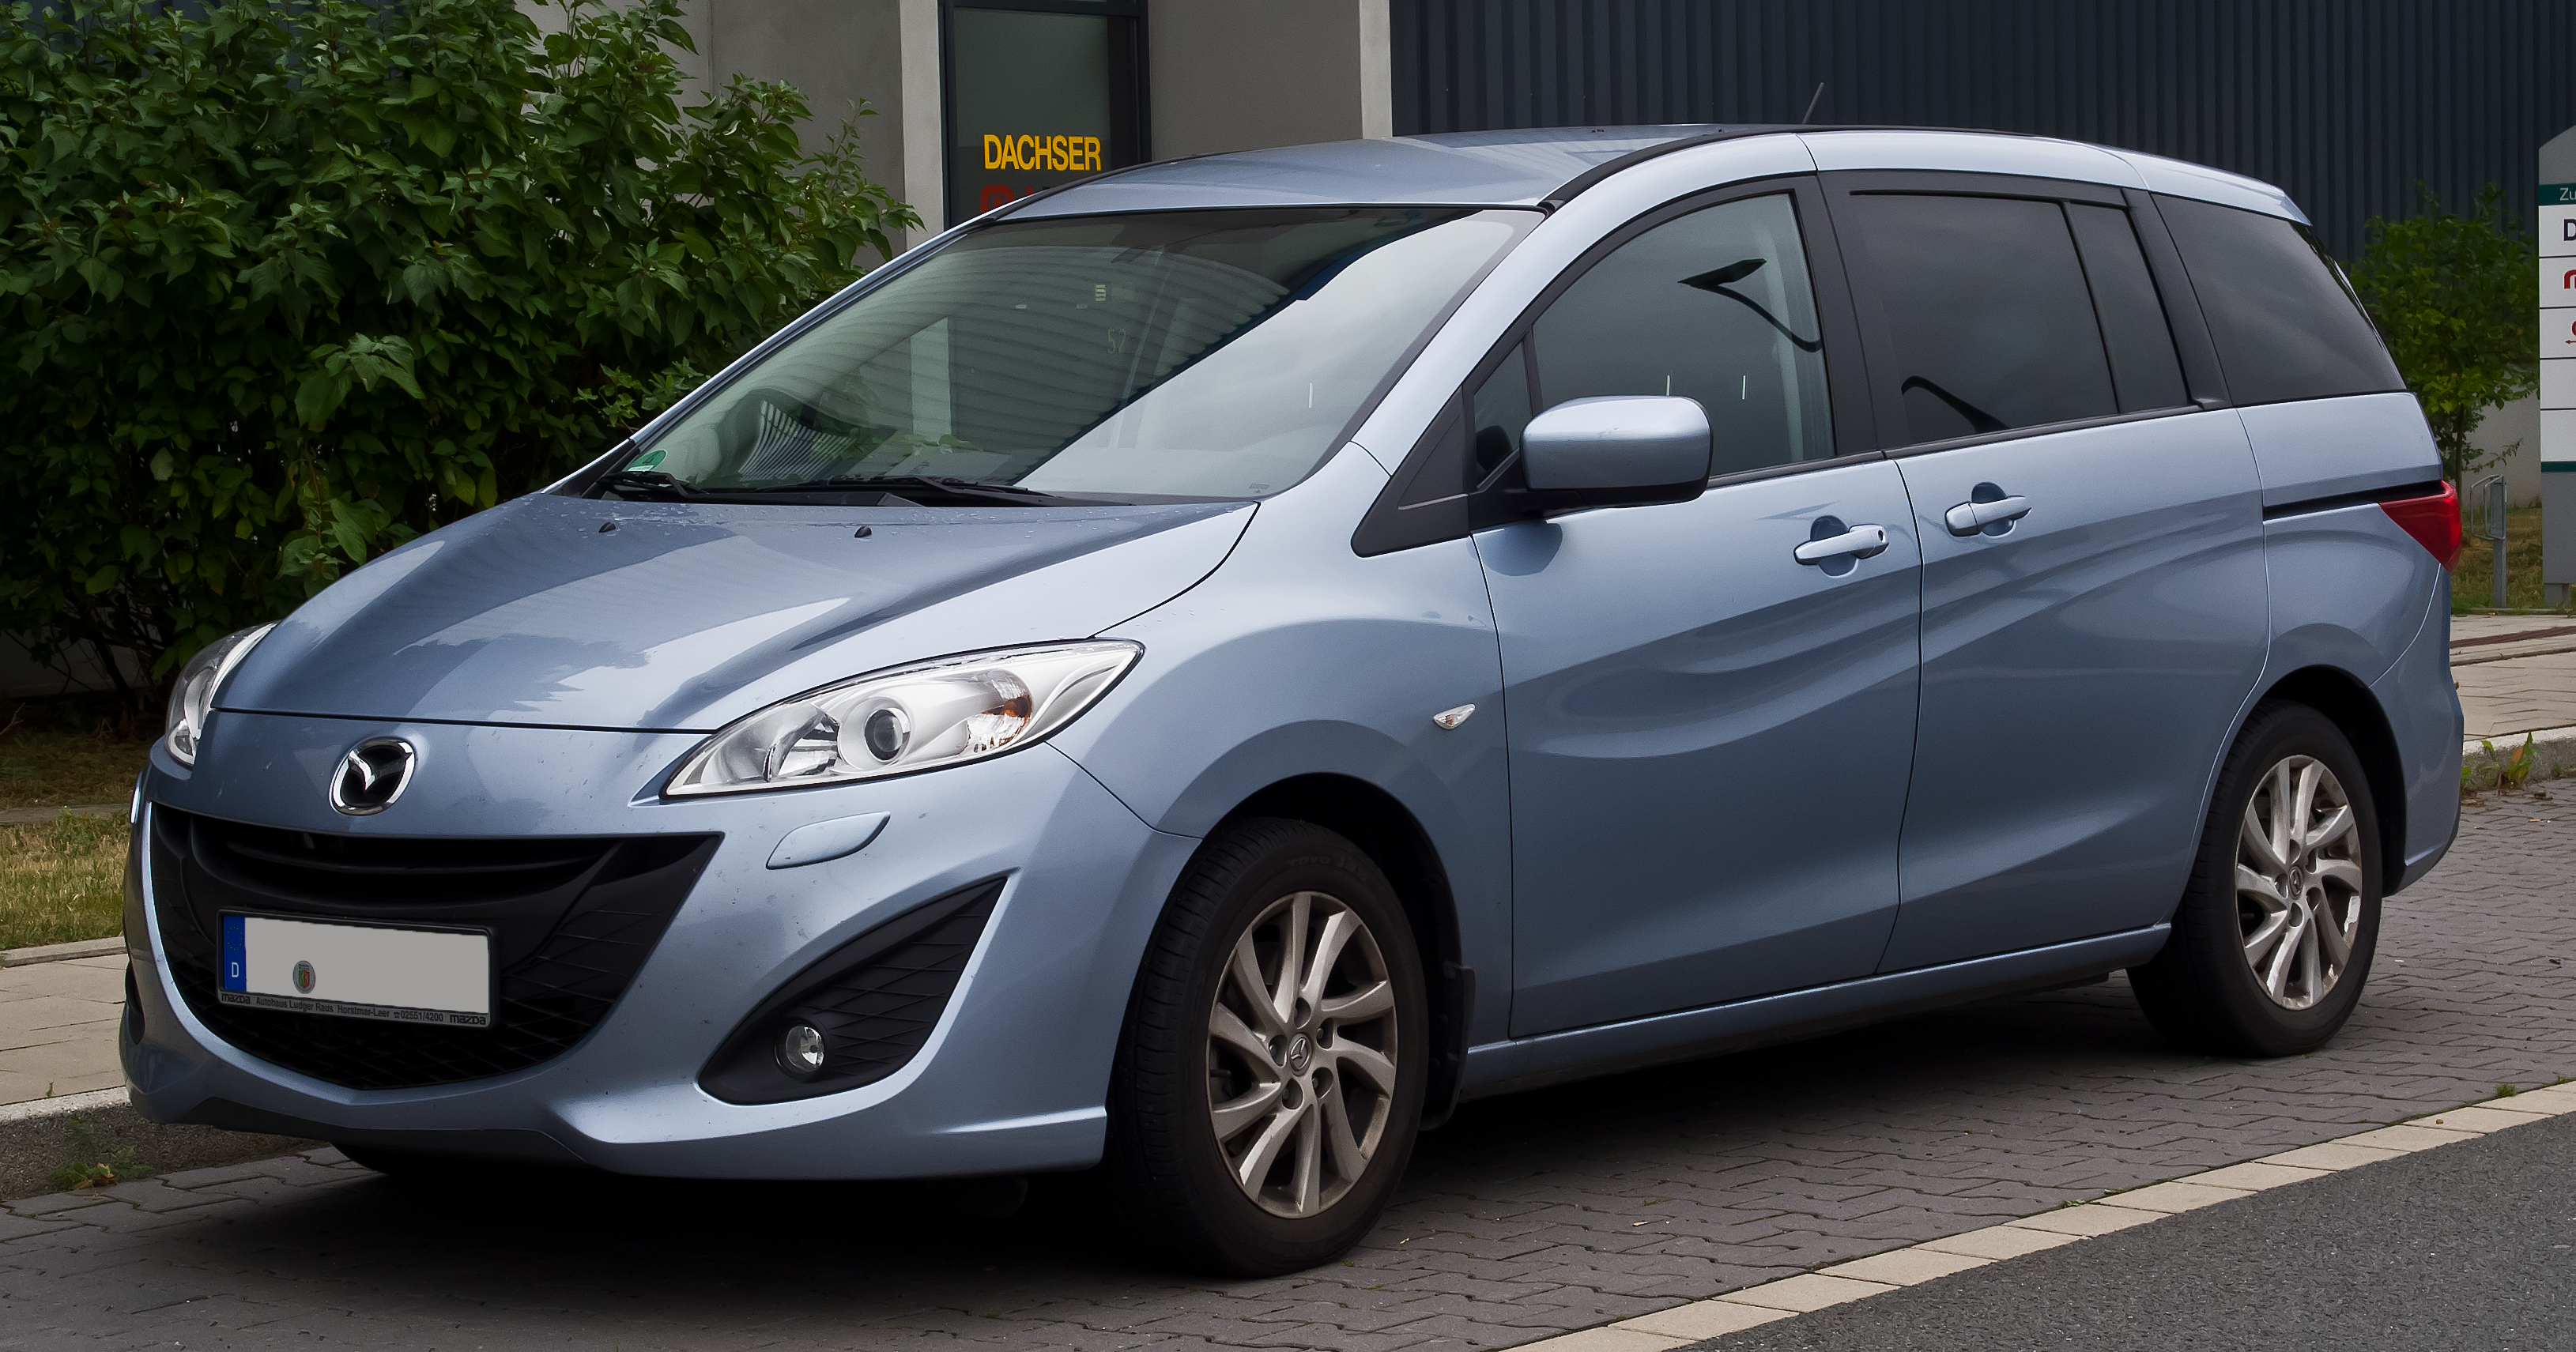 File:Mazda5 (II) – Frontansicht, 25. August 2013 ...